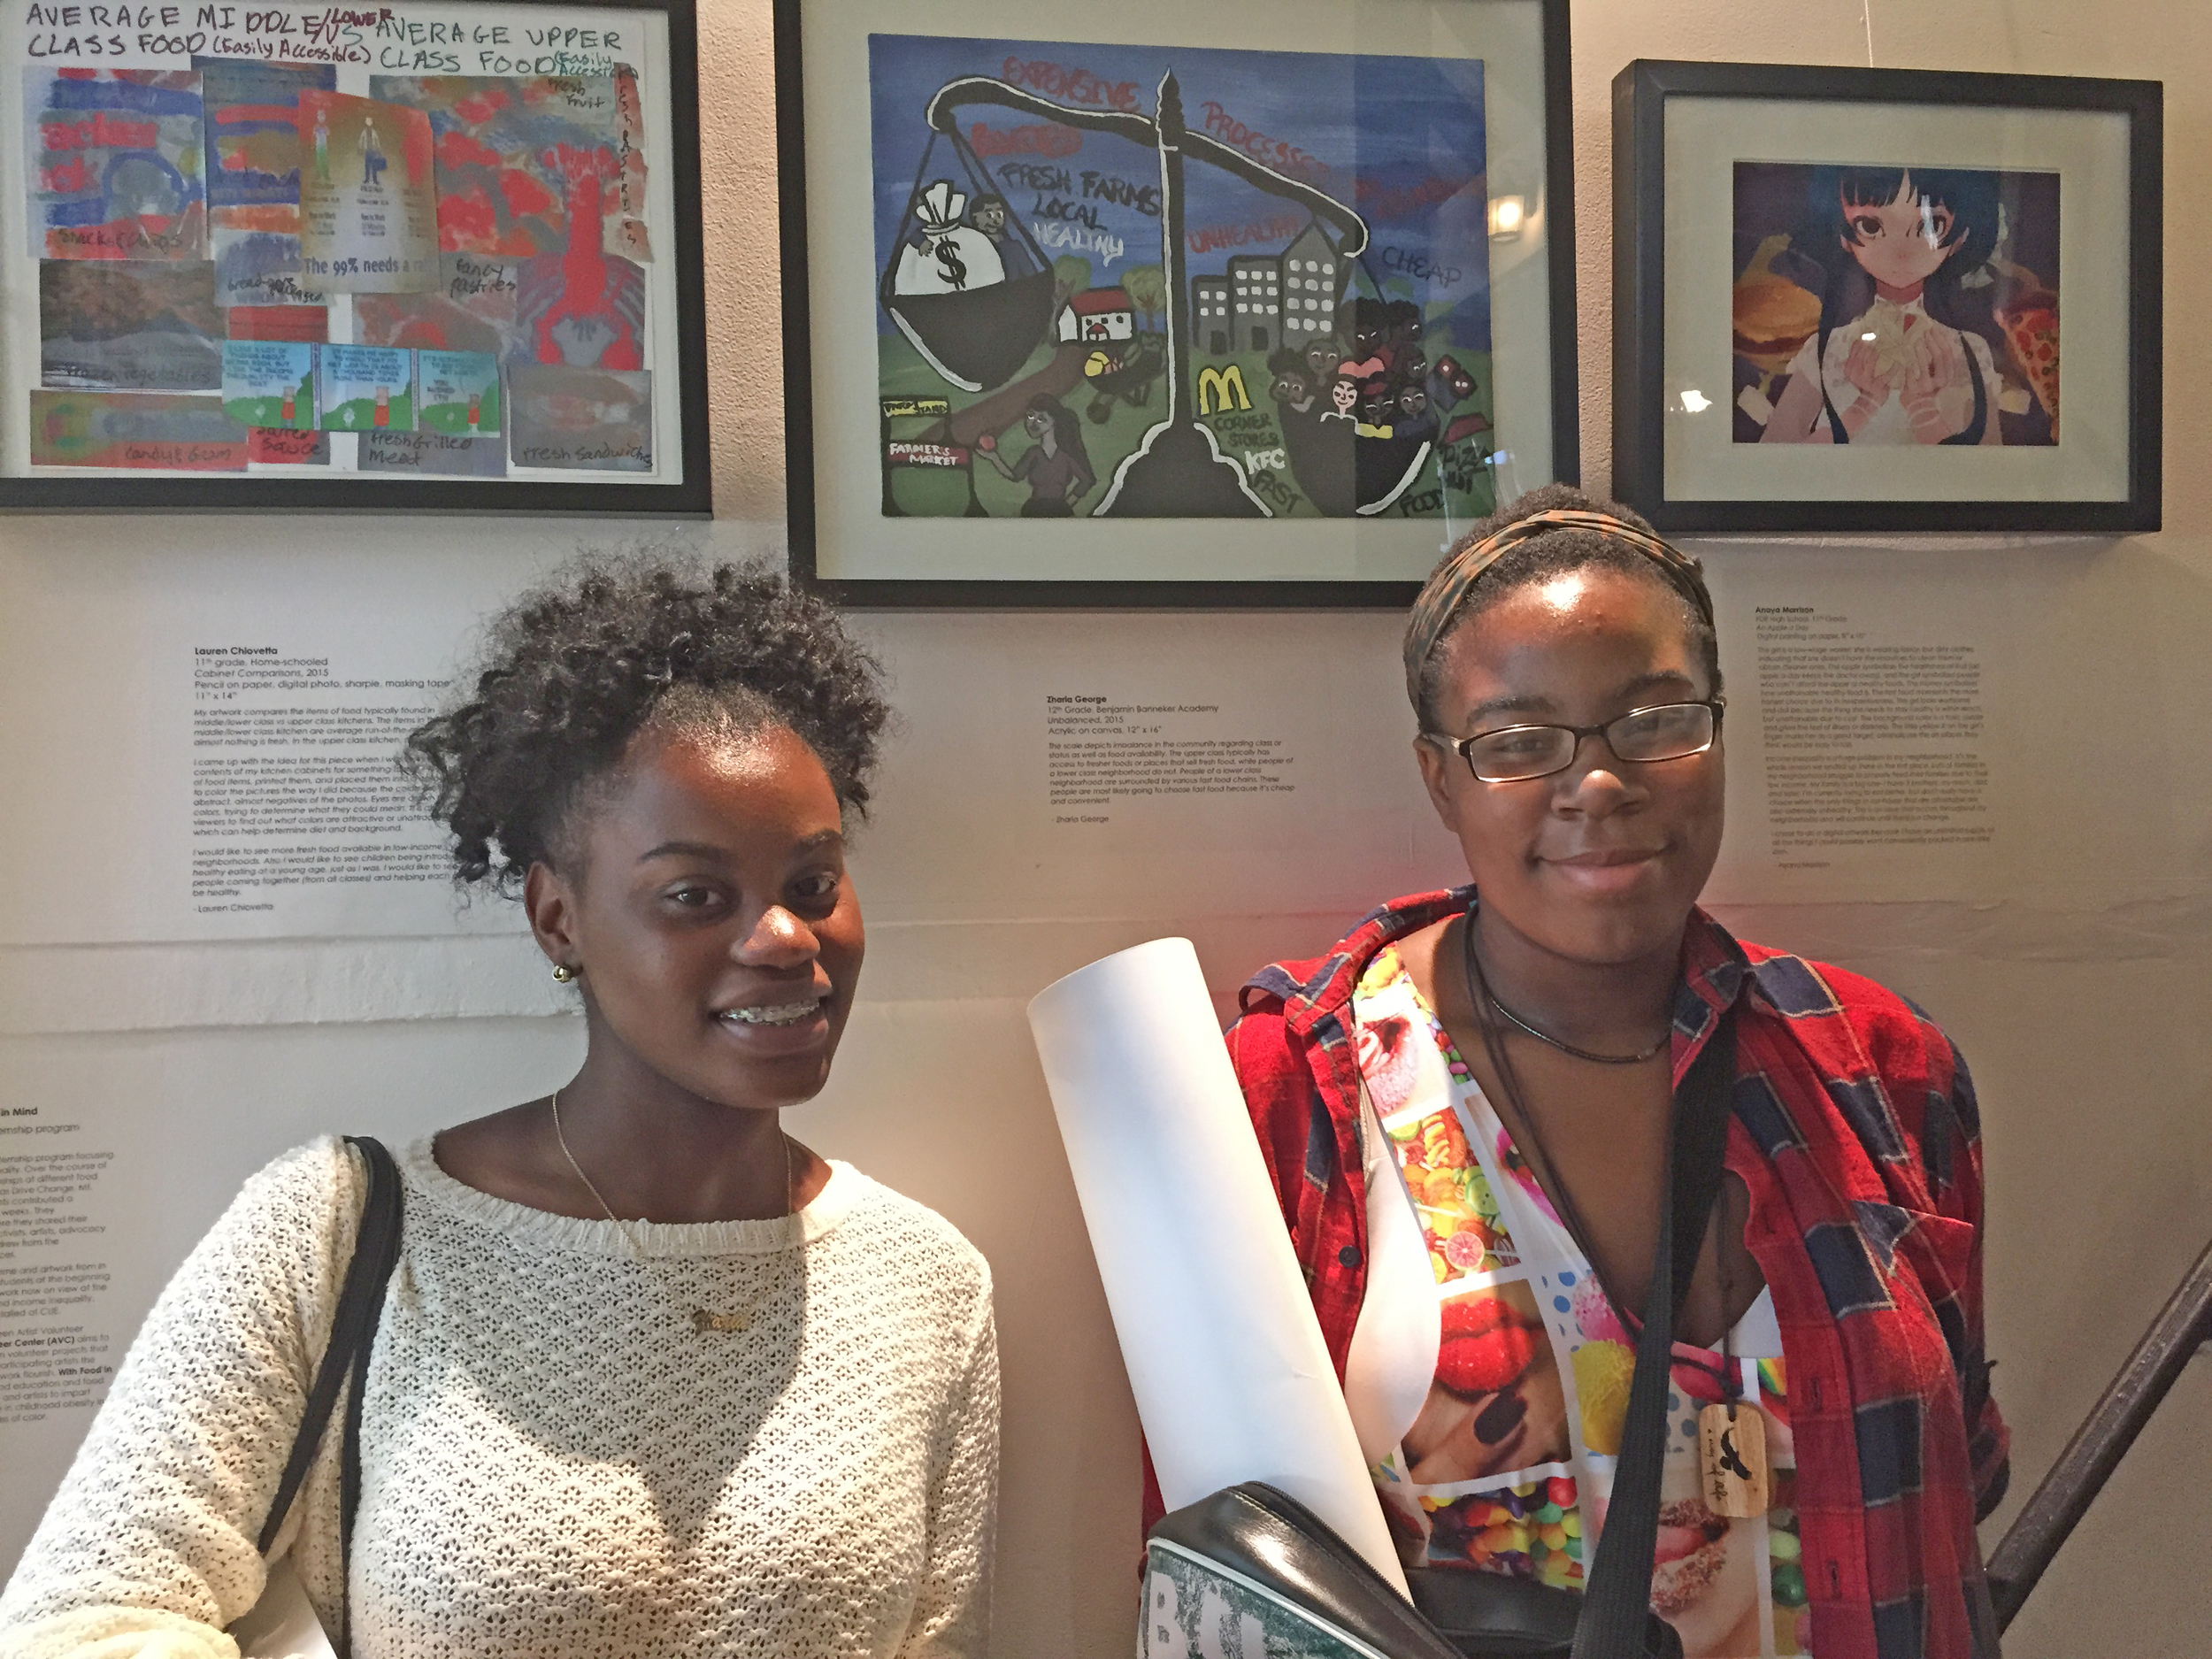 Zharia and Anaya in front of their artwork at the Sensing (In)Equality exhibition at Old Stone House in Brooklyn.